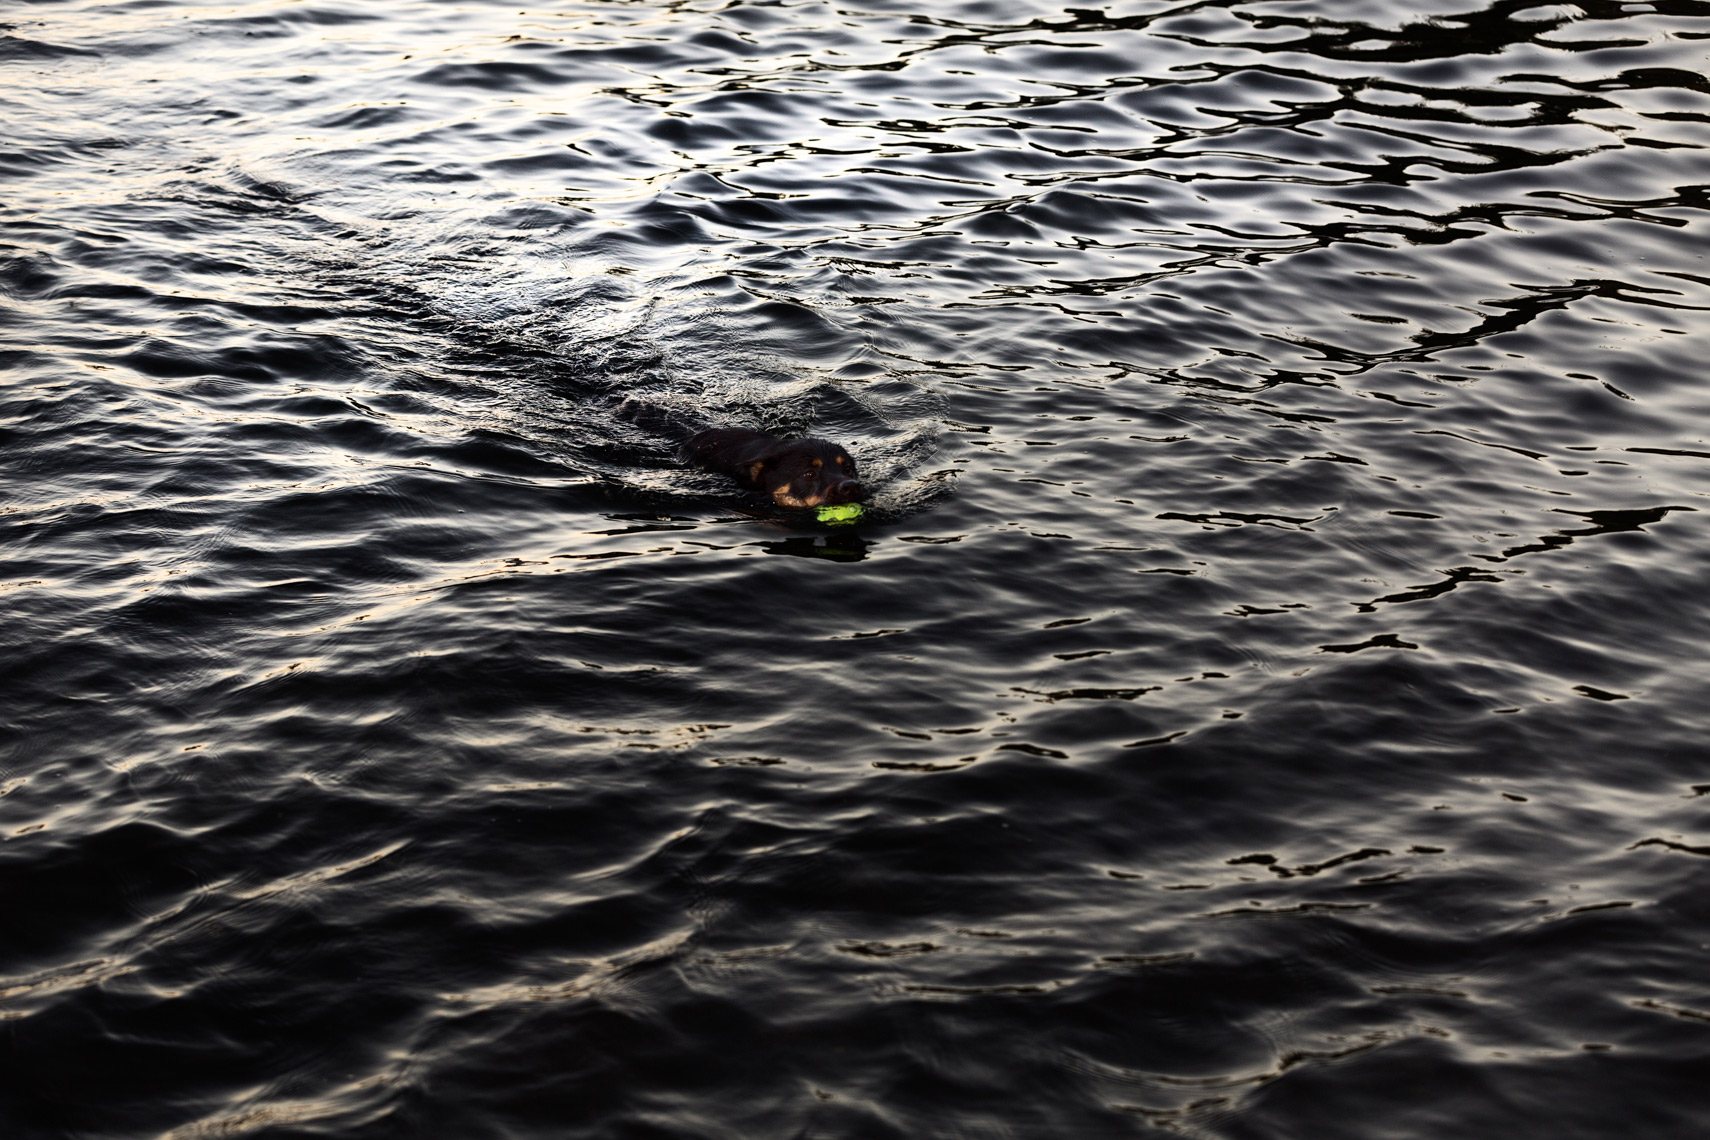 A dog swimming in a lake after retrieving  his ball